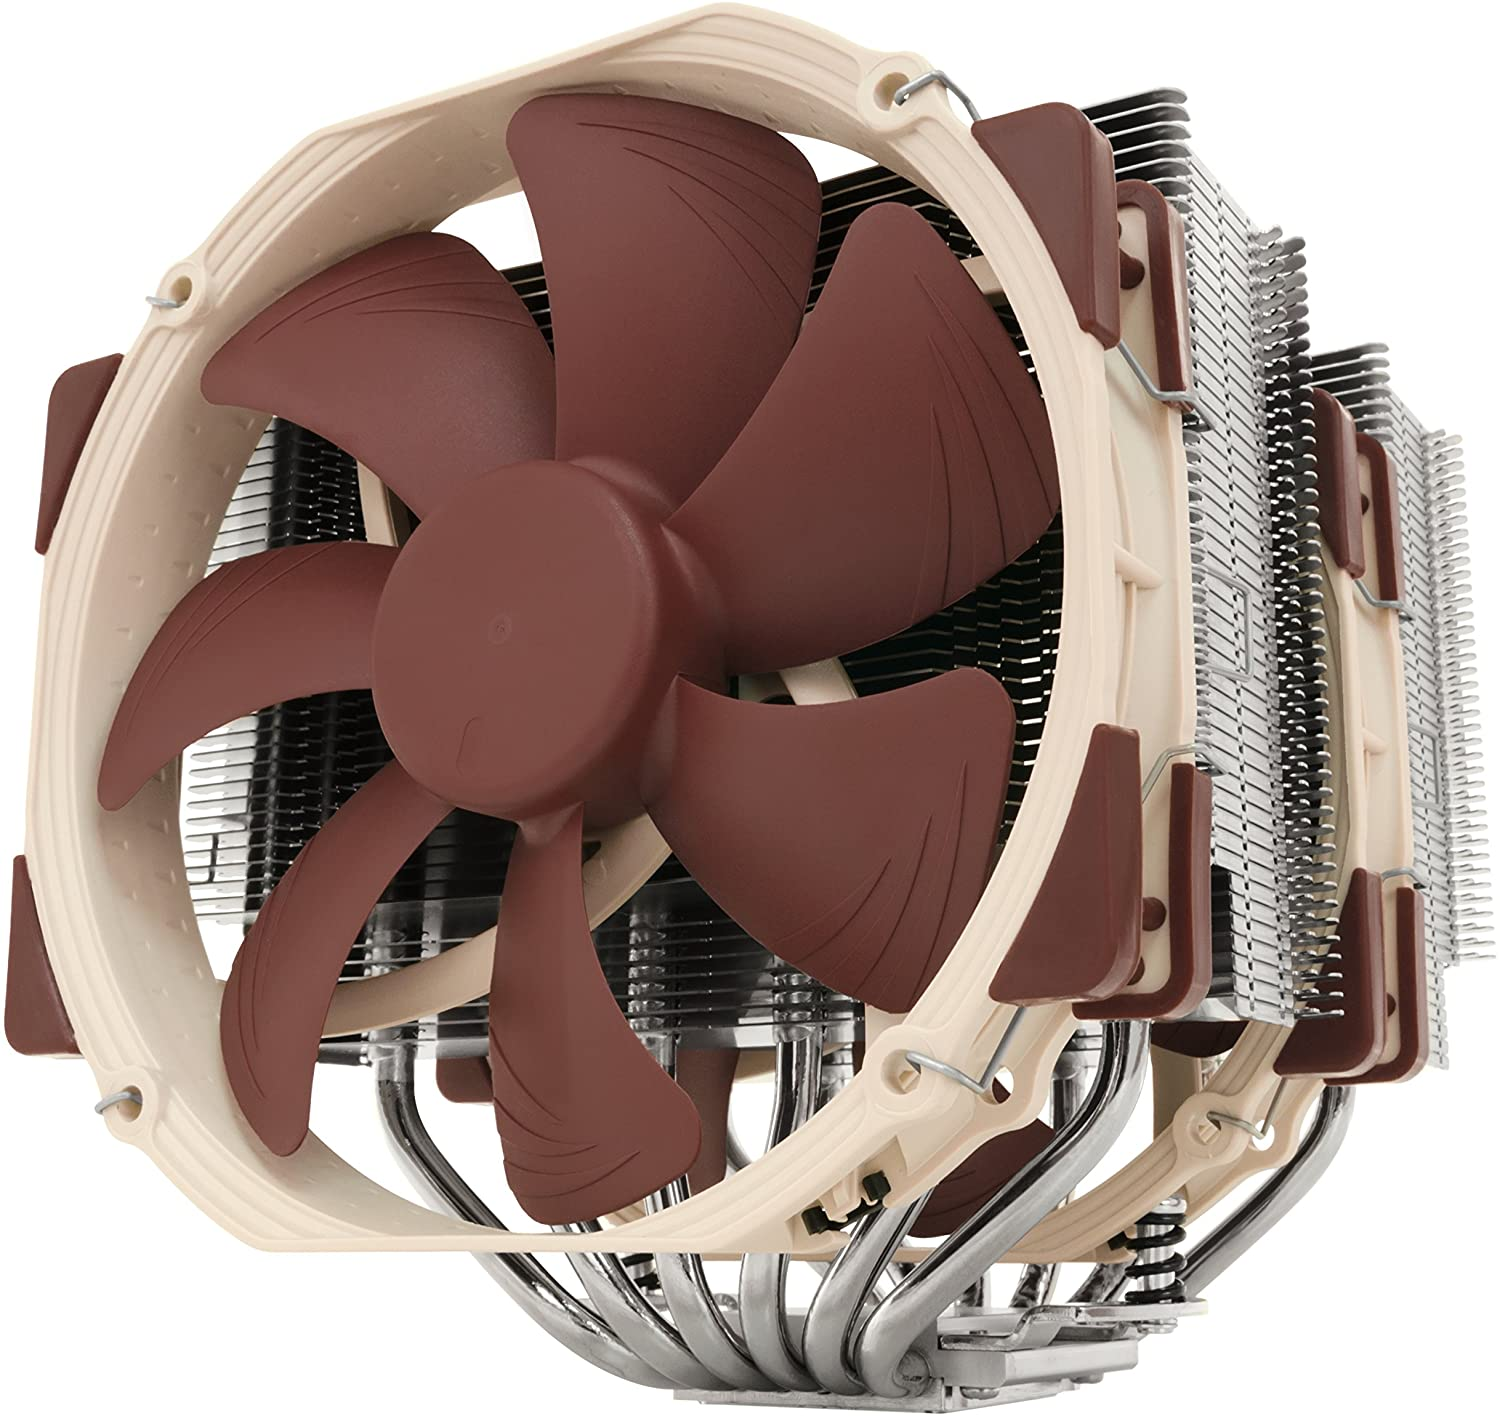 Top 3 Best Cpu Coolers For Ryzen 7 3700x/3800x Builds: Reviews In 2020